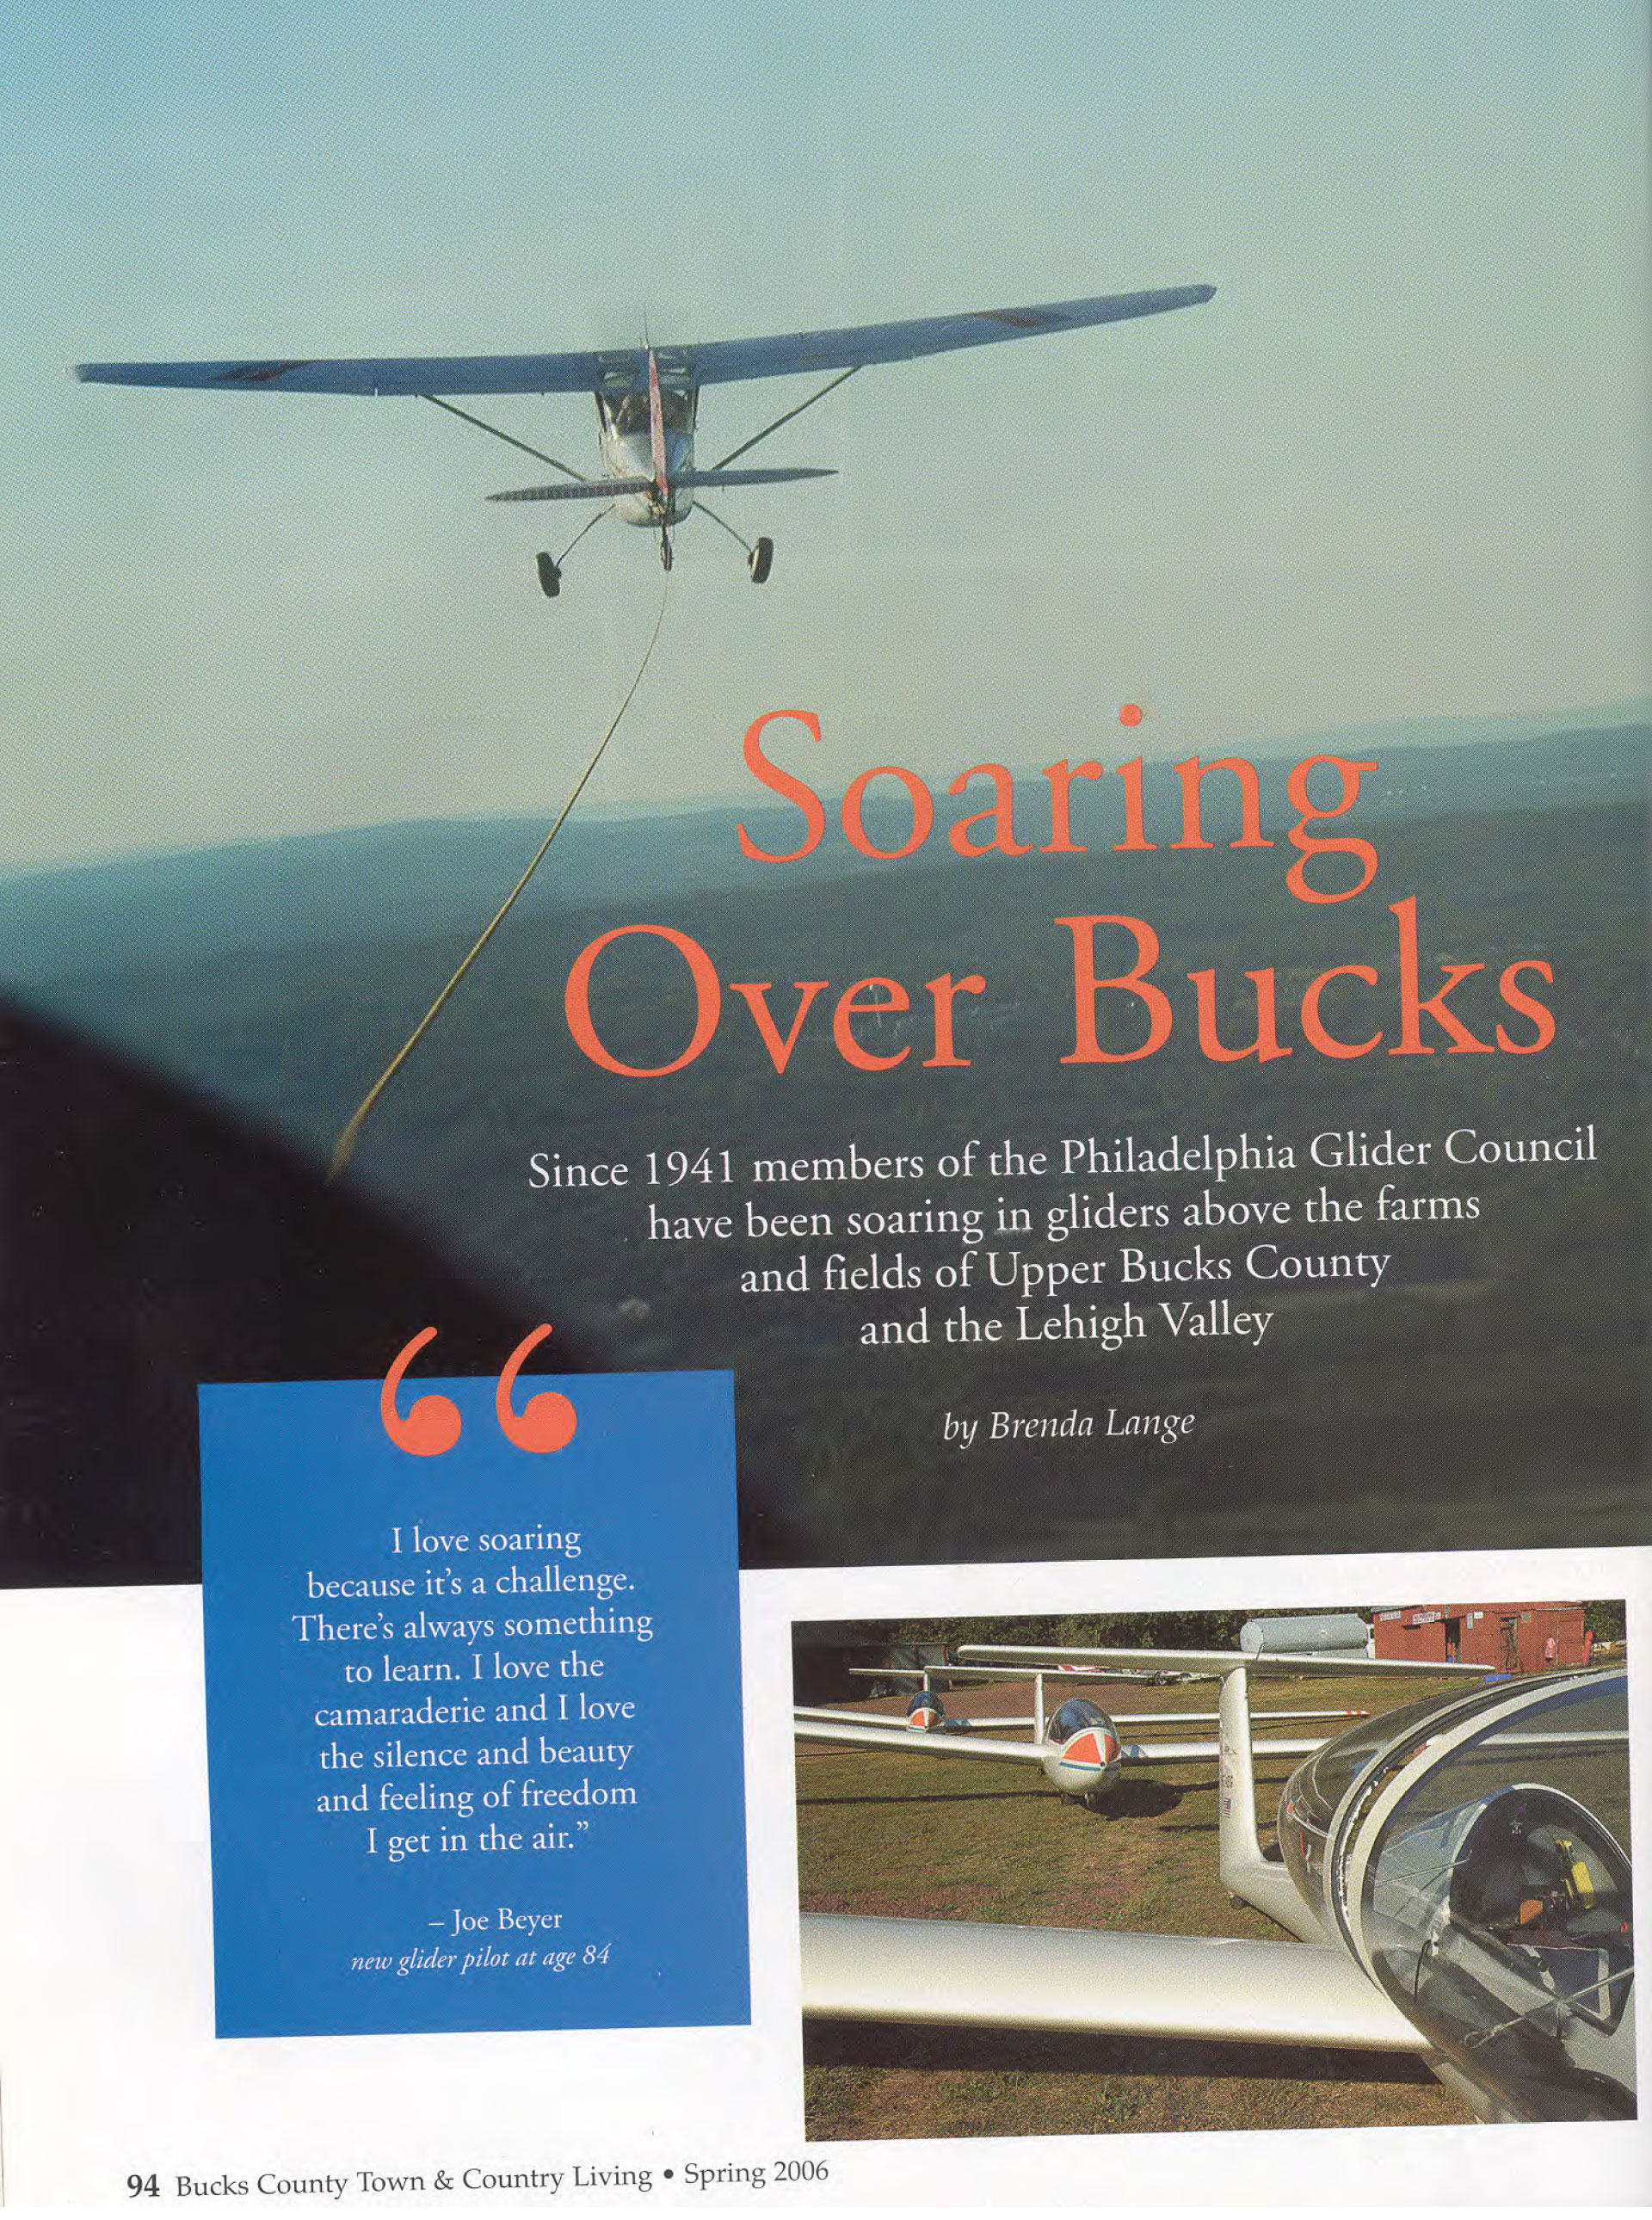 Soaring Over Bucks